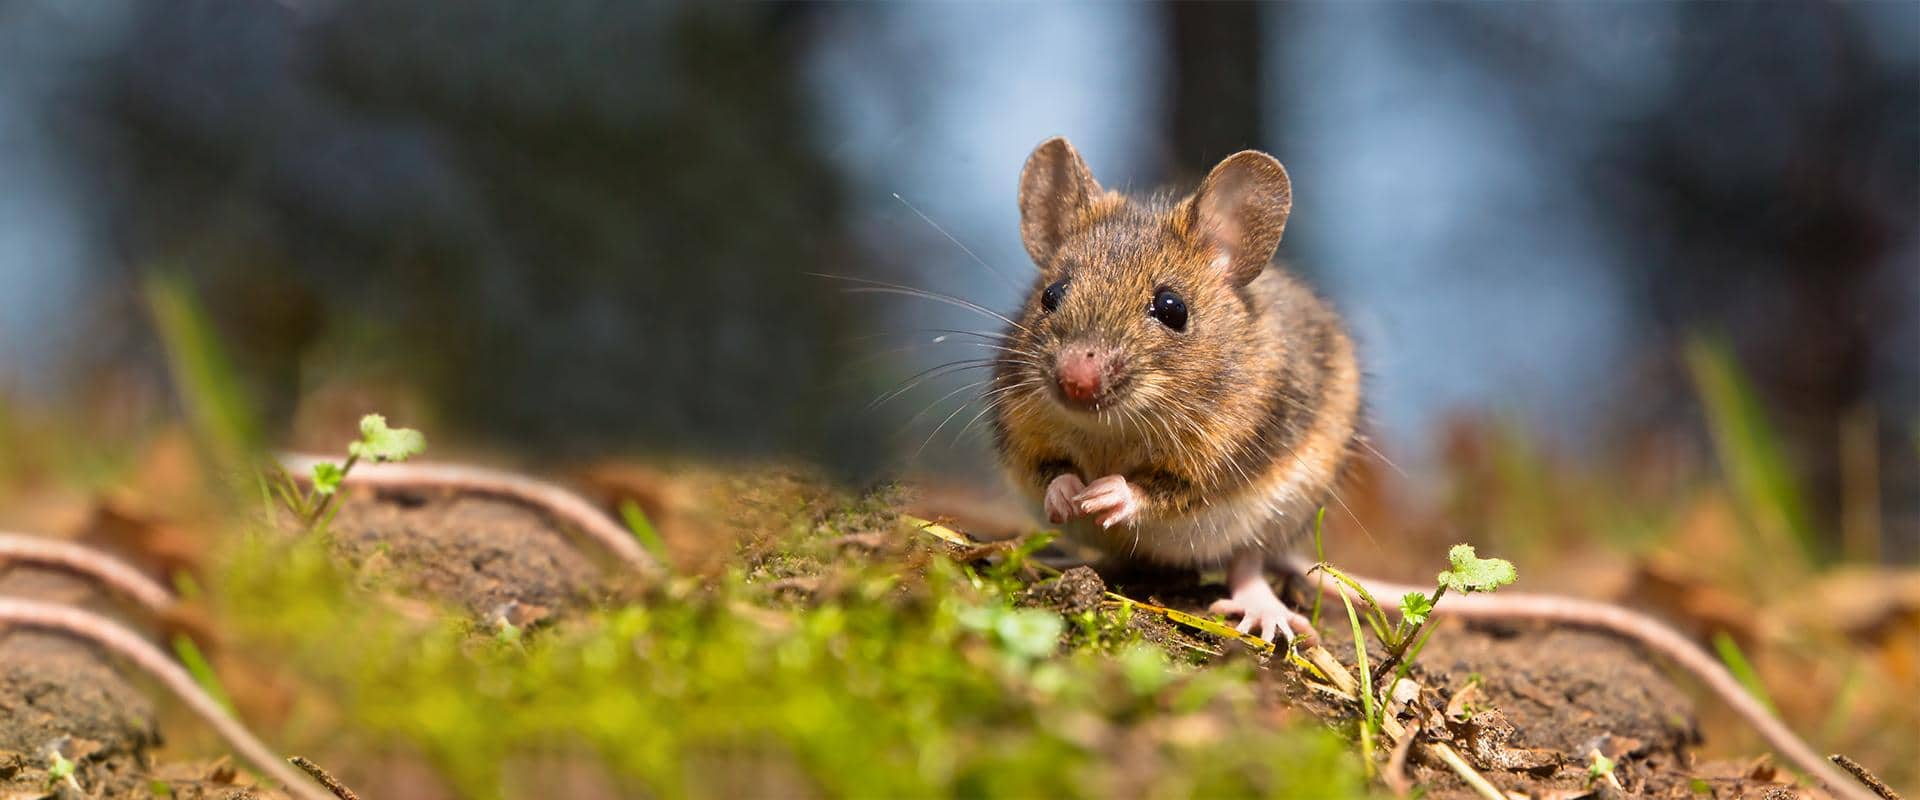 central wa rodent control